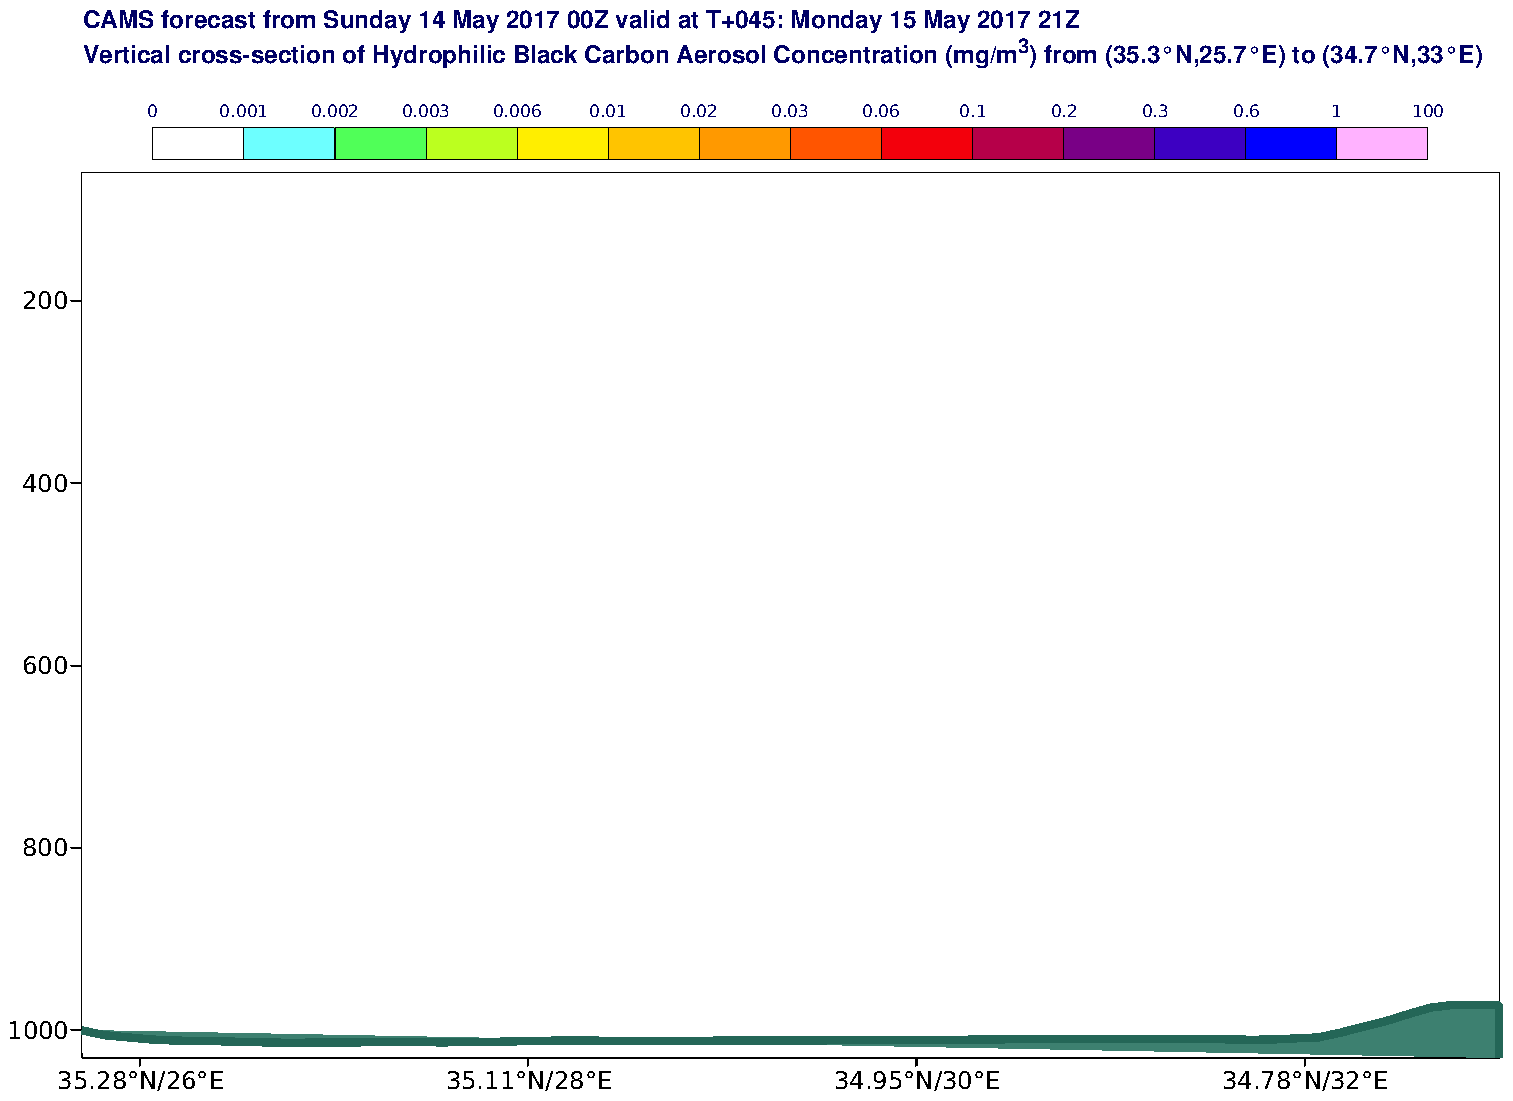 Vertical cross-section of Hydrophilic Black Carbon Aerosol Concentration (mg/m3) valid at T45 - 2017-05-15 21:00